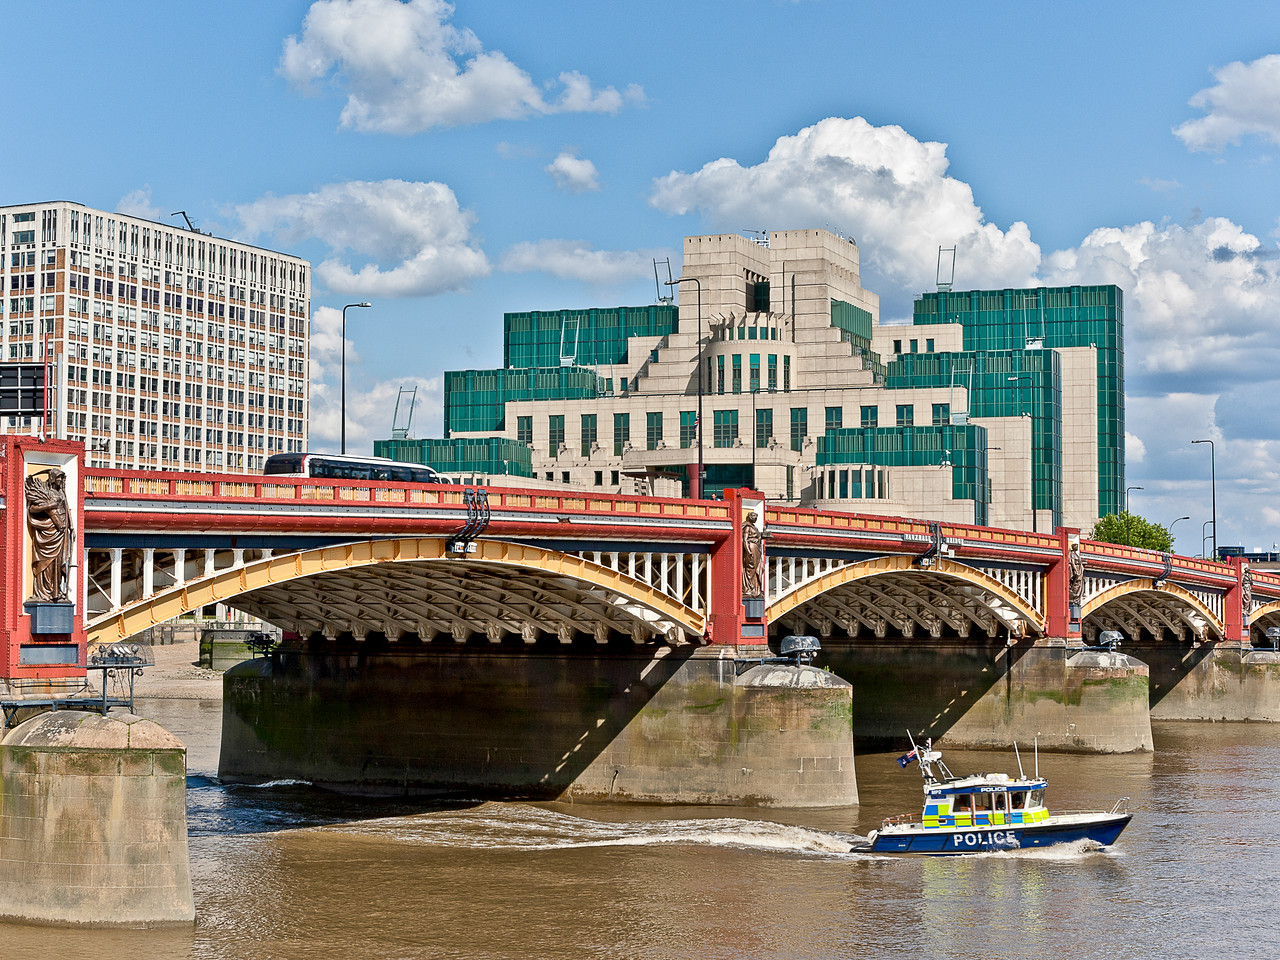 Vauxhall Bridge in South London and the MI5 Building